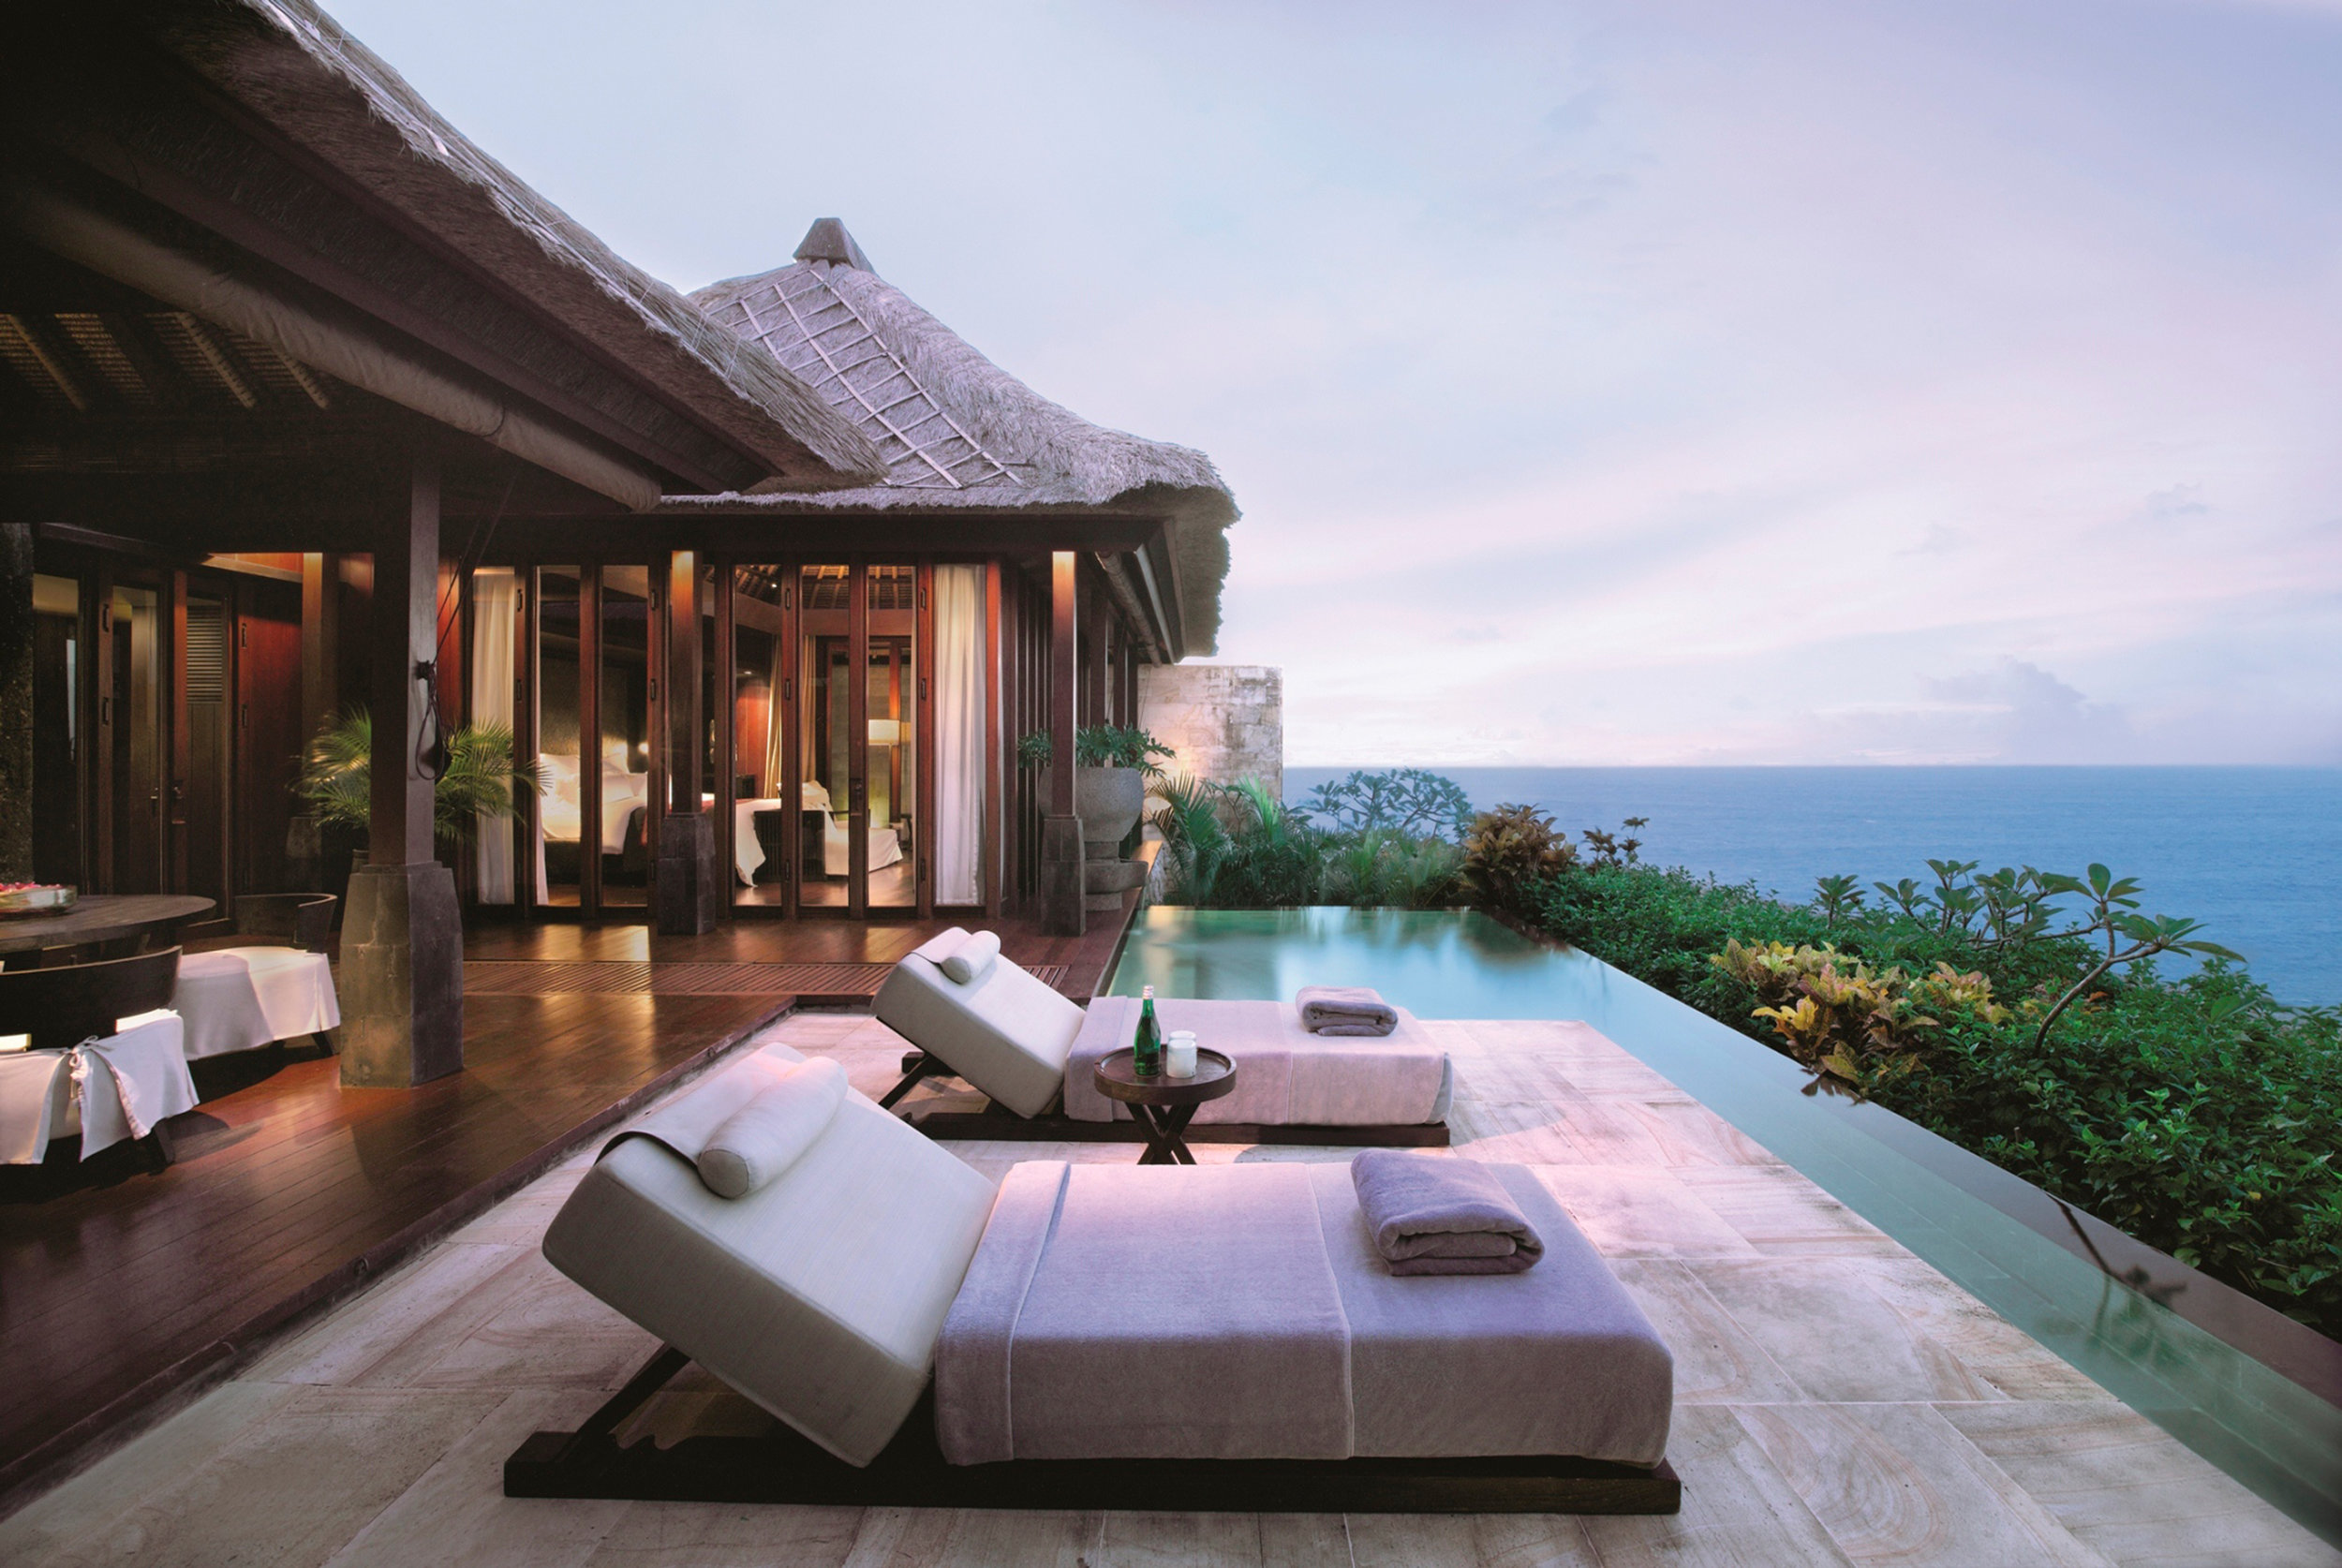 Patio and private plunge pool at the ocean villa.